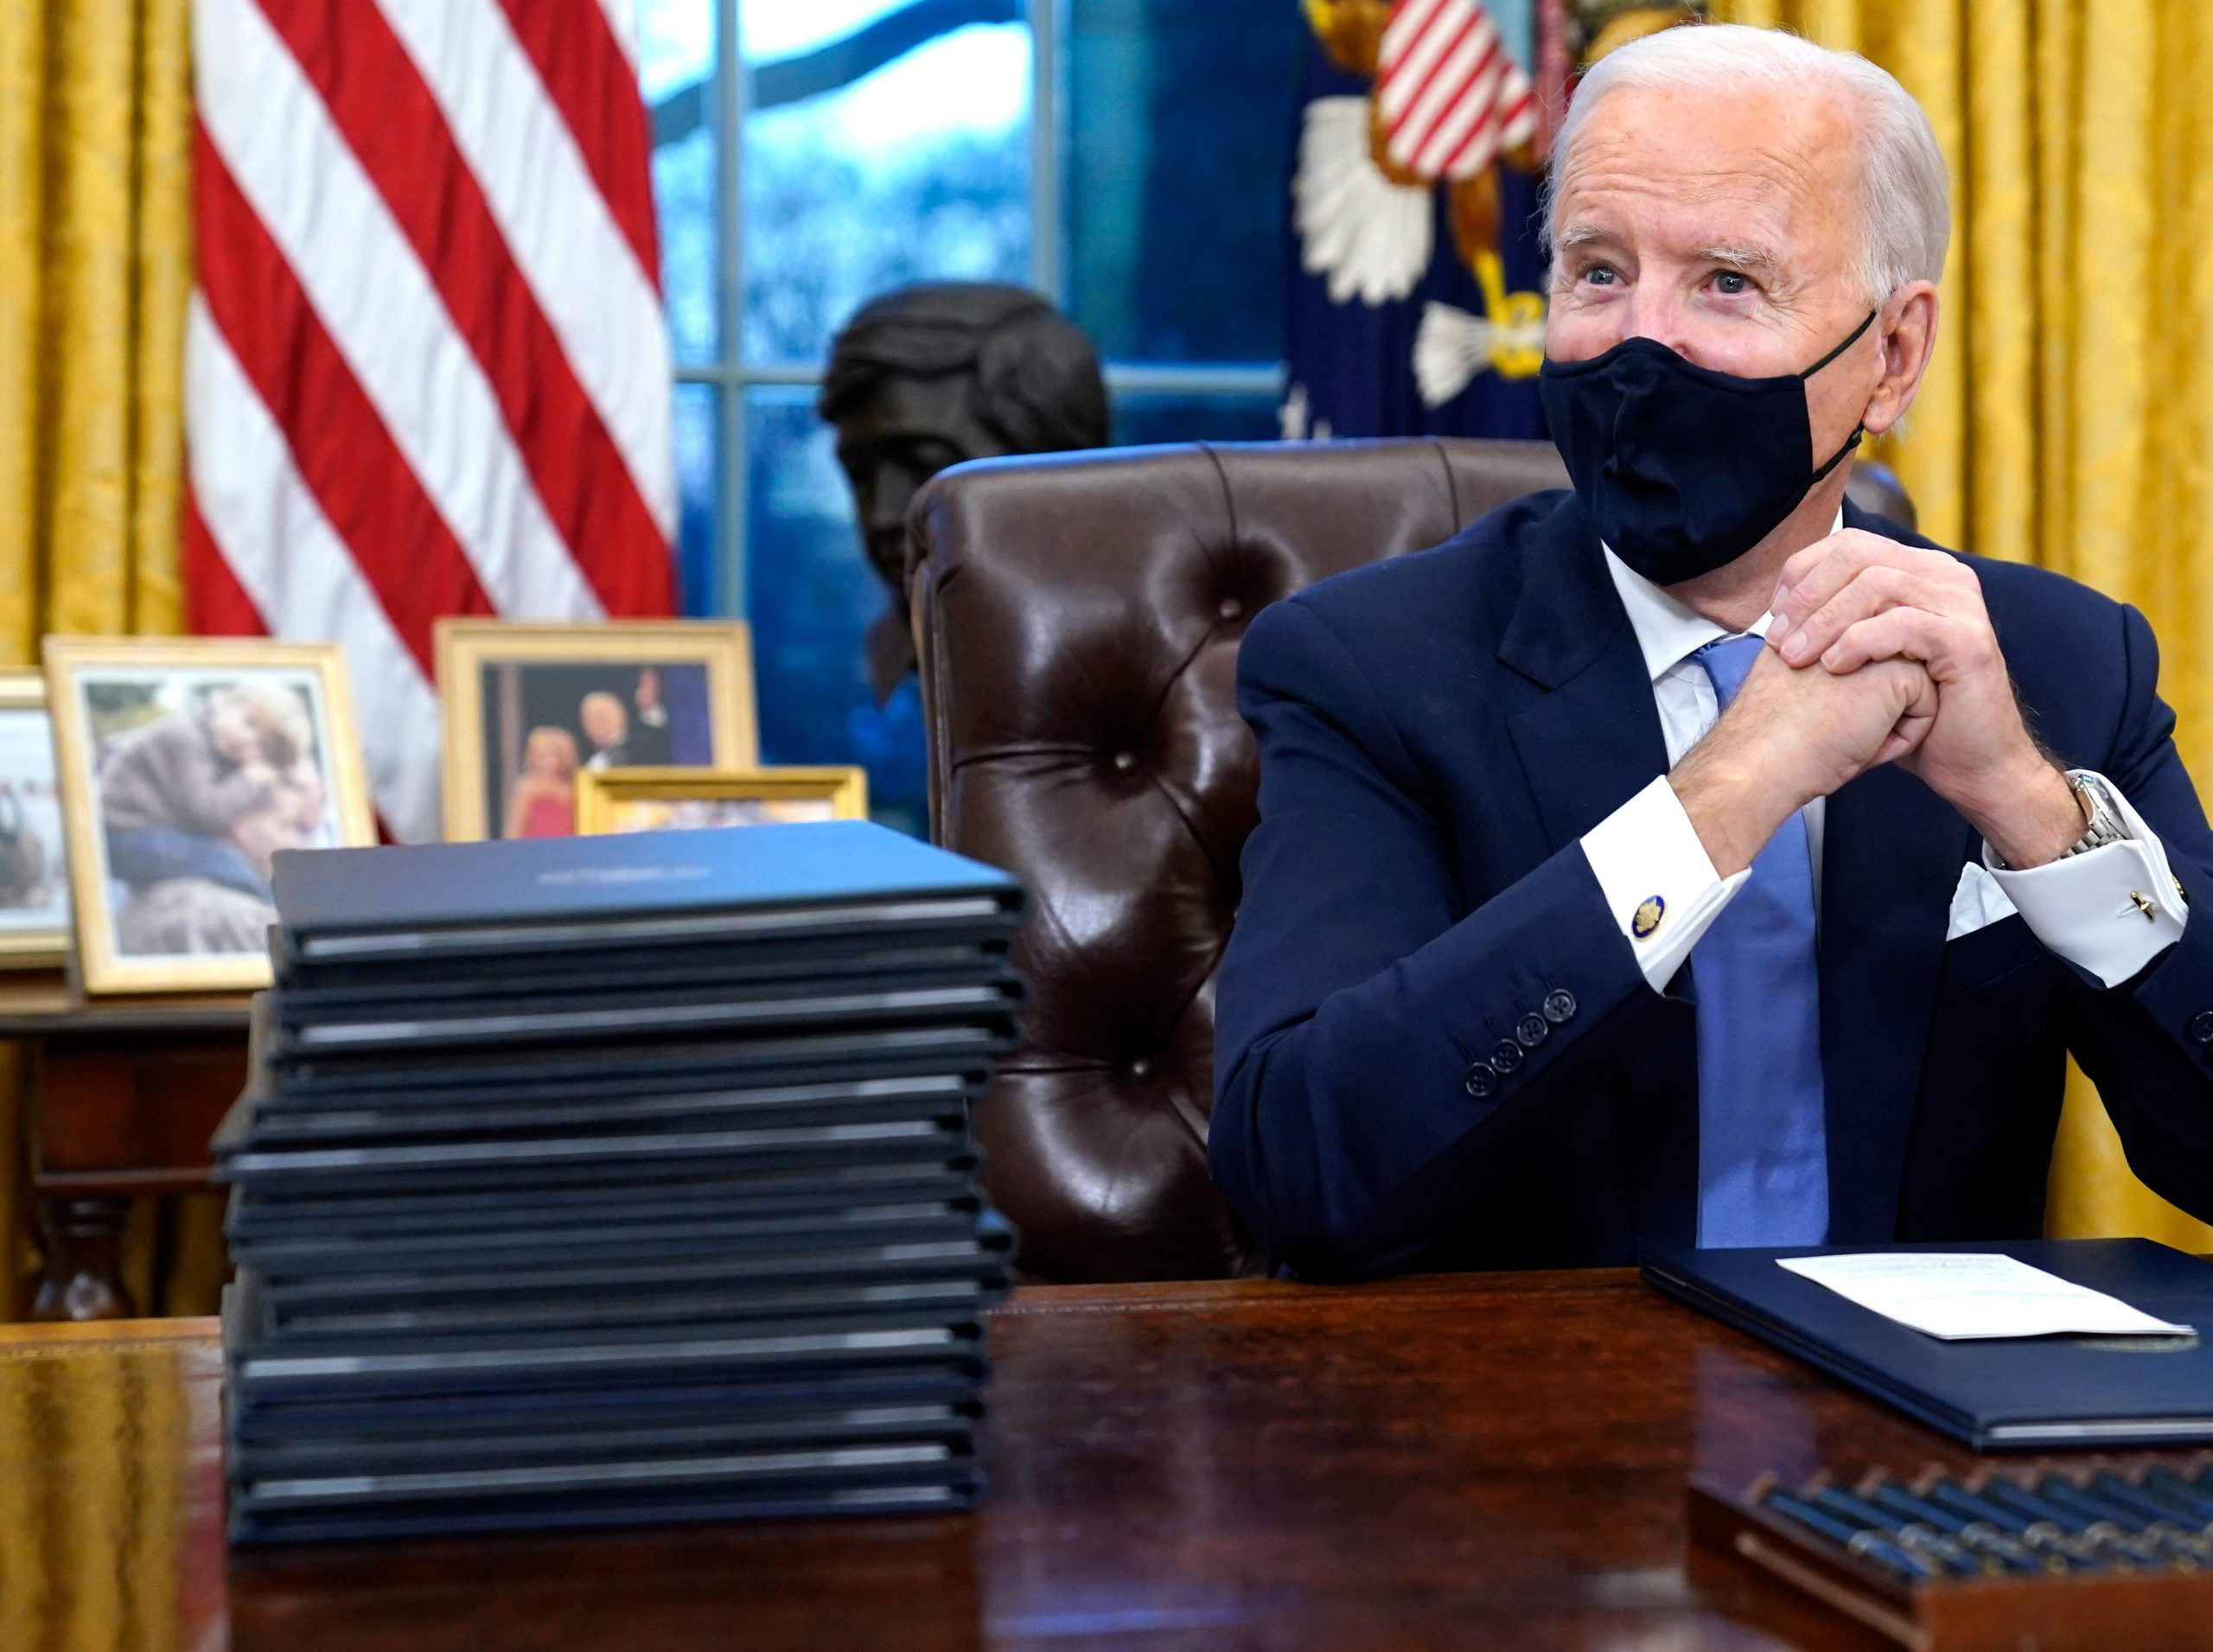 Capital gain tax rates could nearly double under a Biden proposal. How would that your investments?